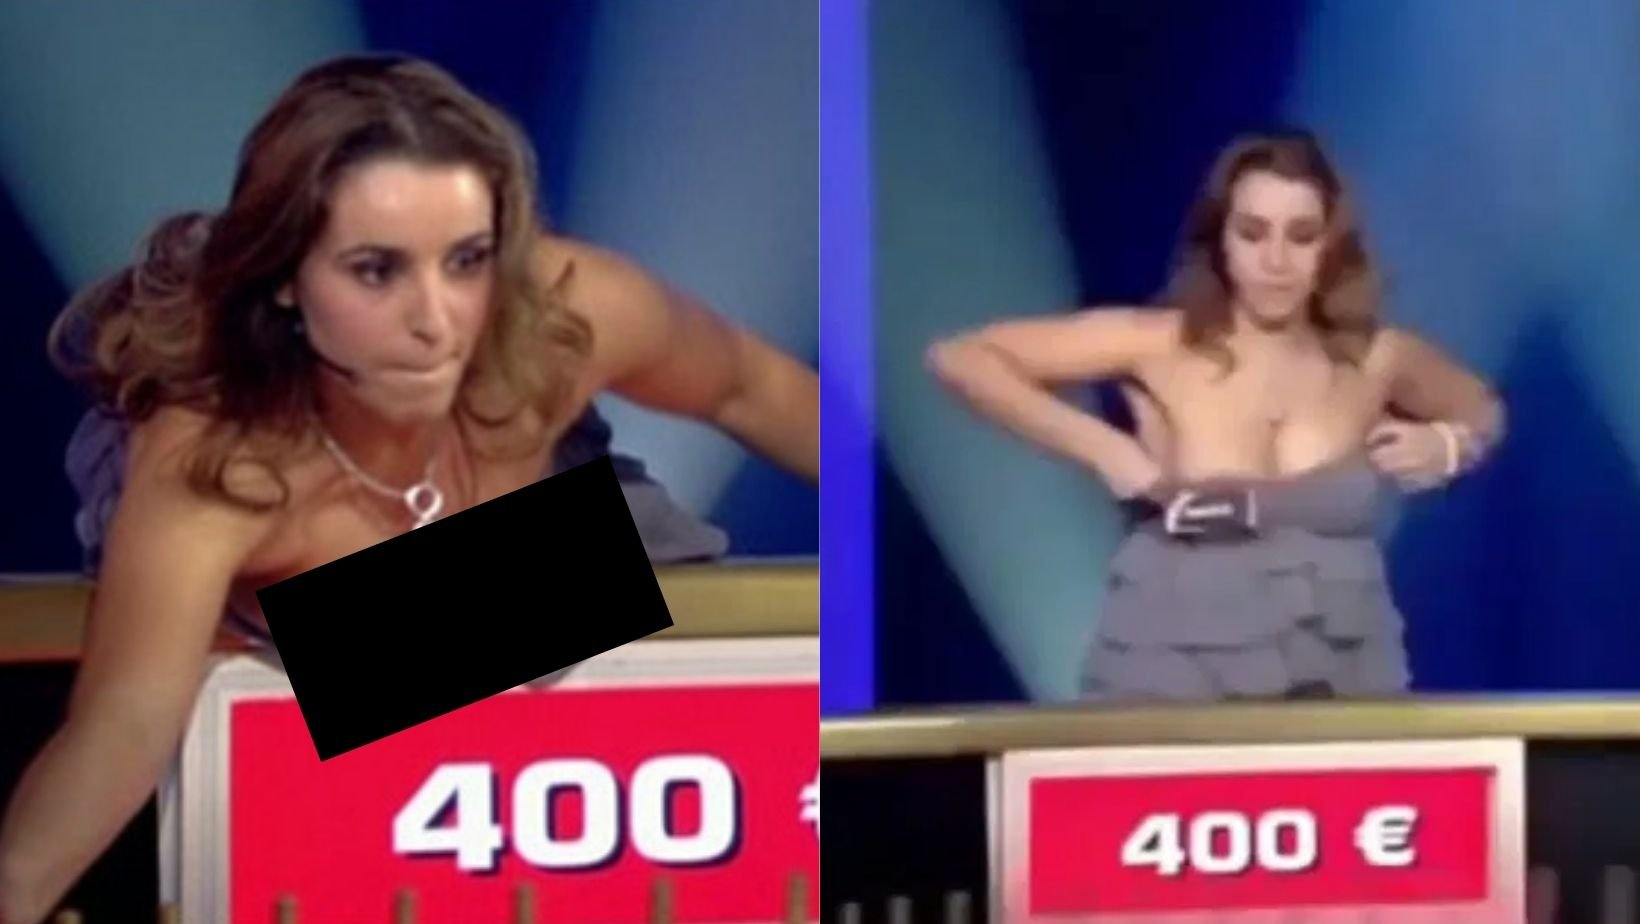 1 56.jpg?resize=1200,630 - Gameshow Contestant Had A Flashy Wardrobe Fail That Exposed Her B**bs On Live TV